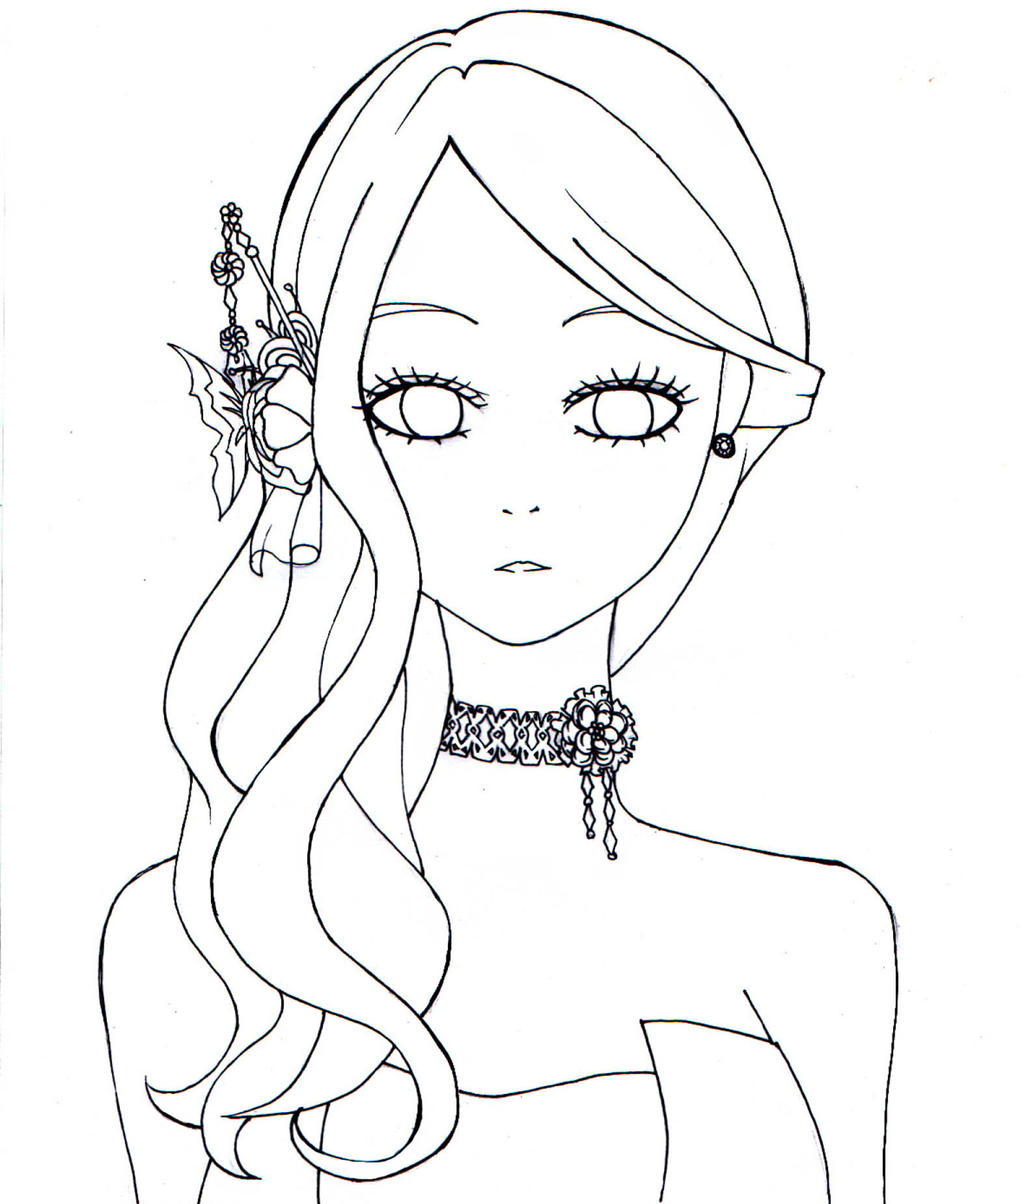 Line Art Free : My fair lady adeiona free line art by chubbycheeksmylove